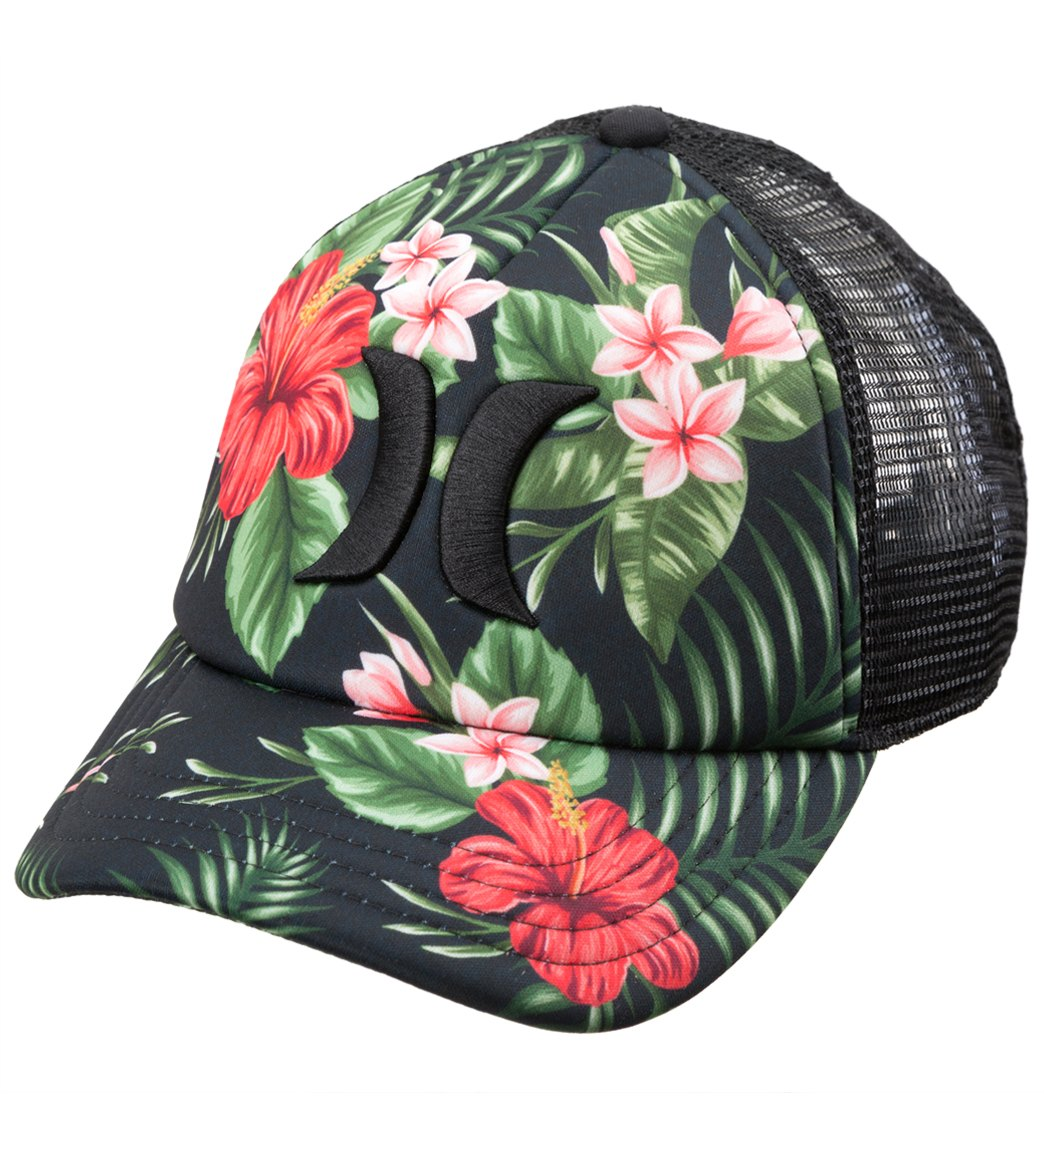 2311b3ed2e3 Hurley One   Only Black Floral Trucker Hat at SwimOutlet.com